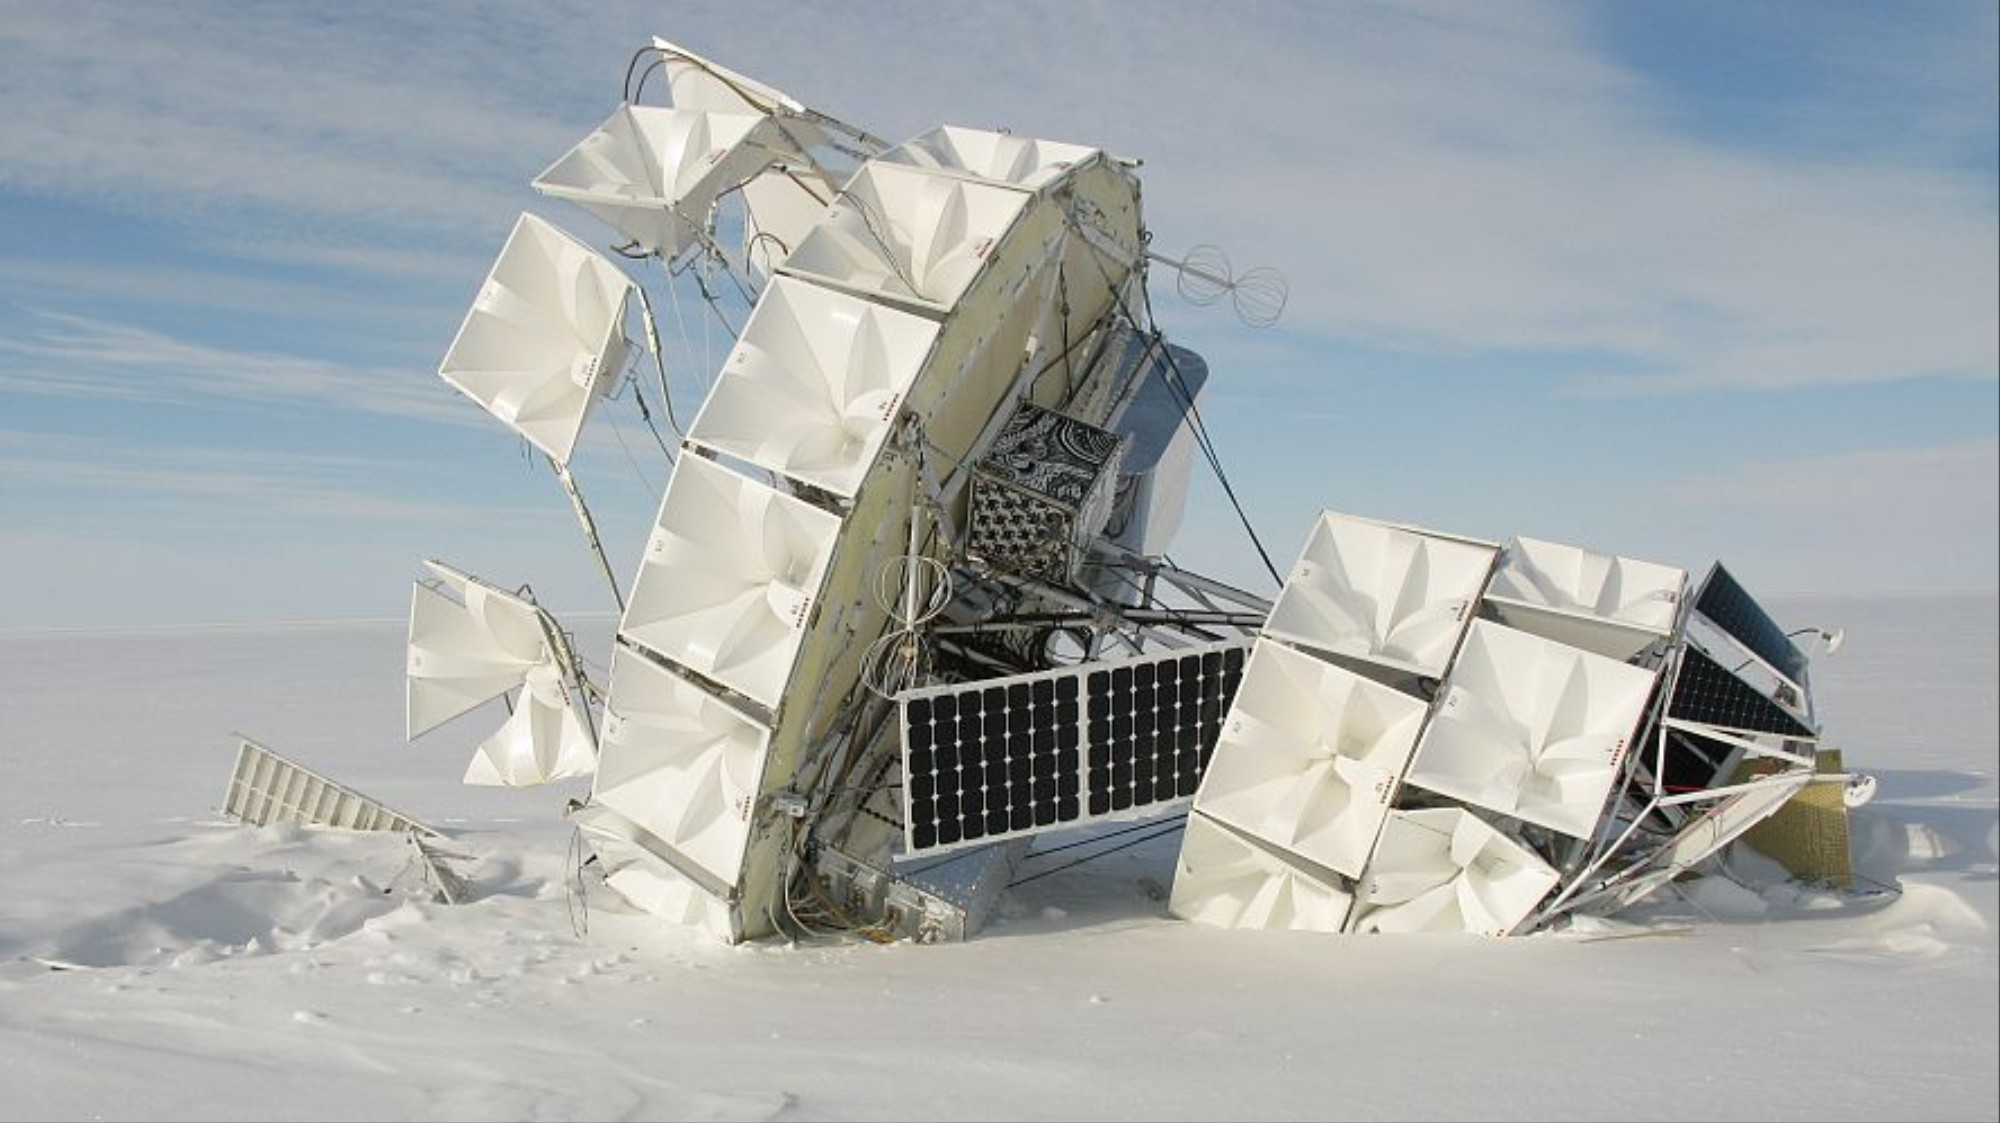 Mysterious Cosmic Rays Shooting from the Ground in Antarctica Could